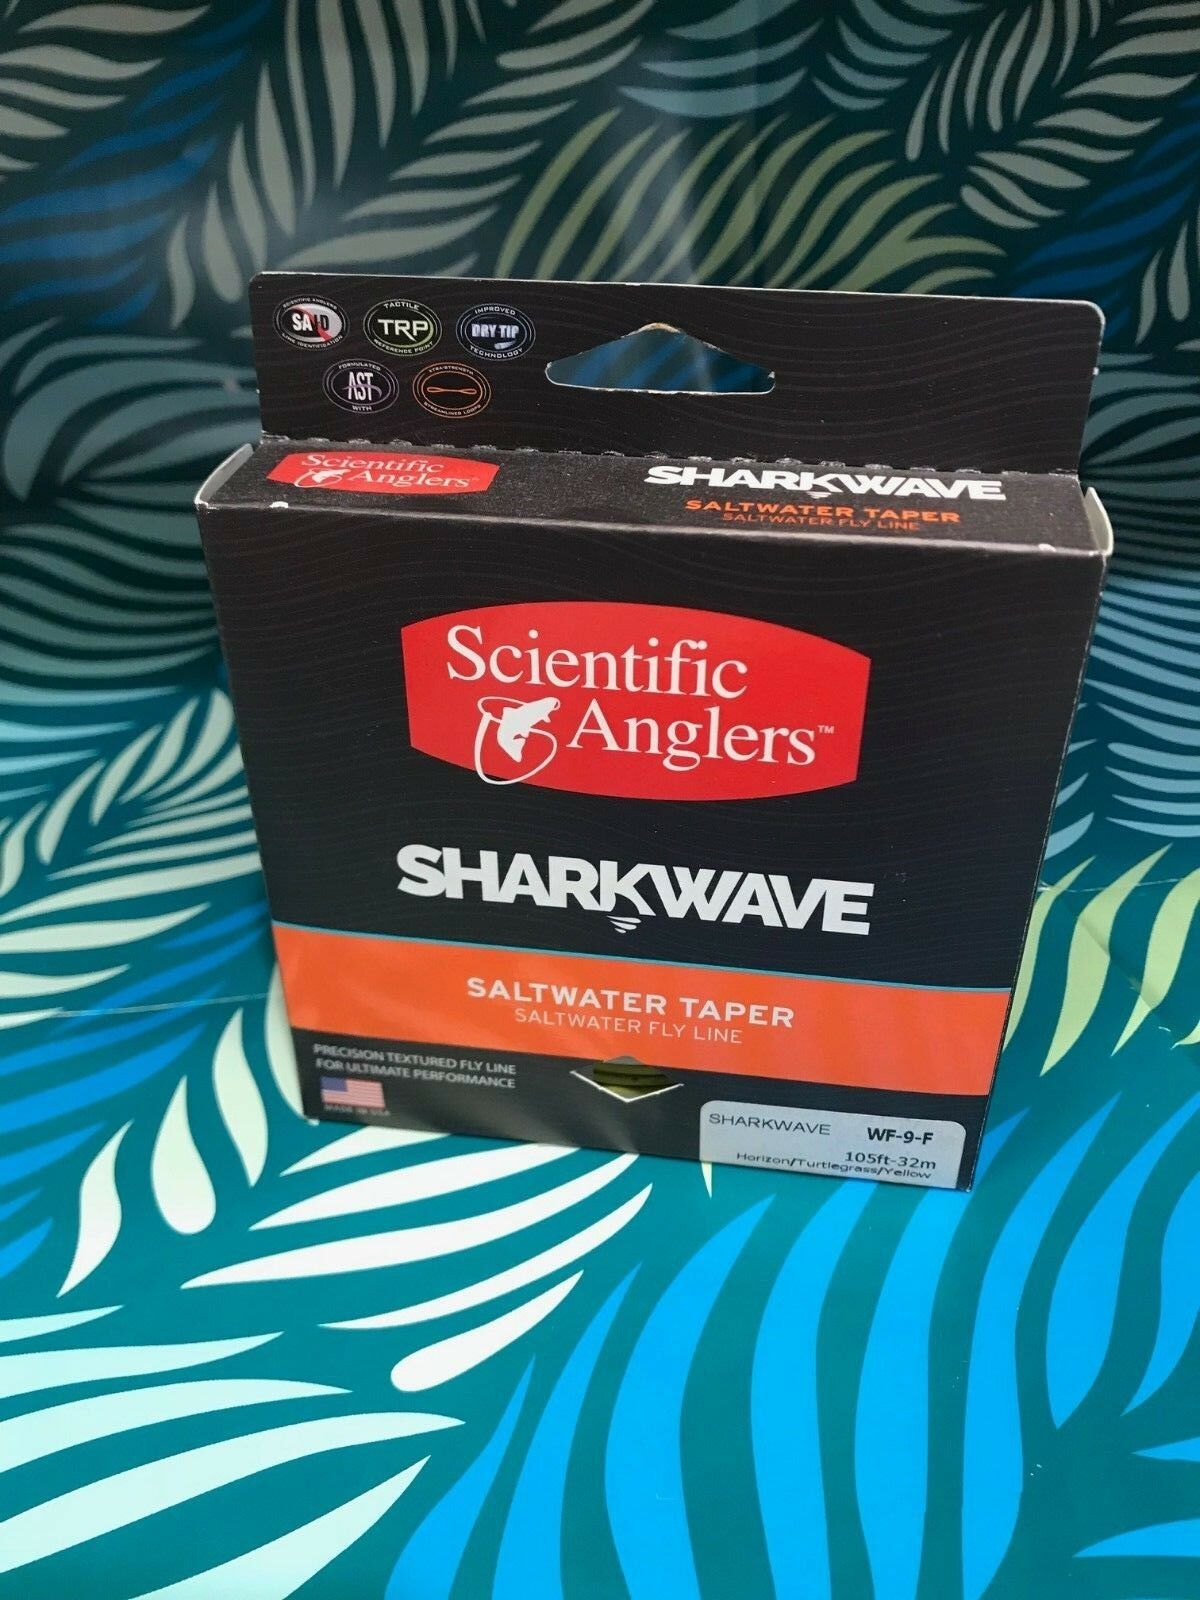 Scientific Angler - Sharkwave  - Saltwater Taper Fly Line - WF-9-F  wholesale cheap